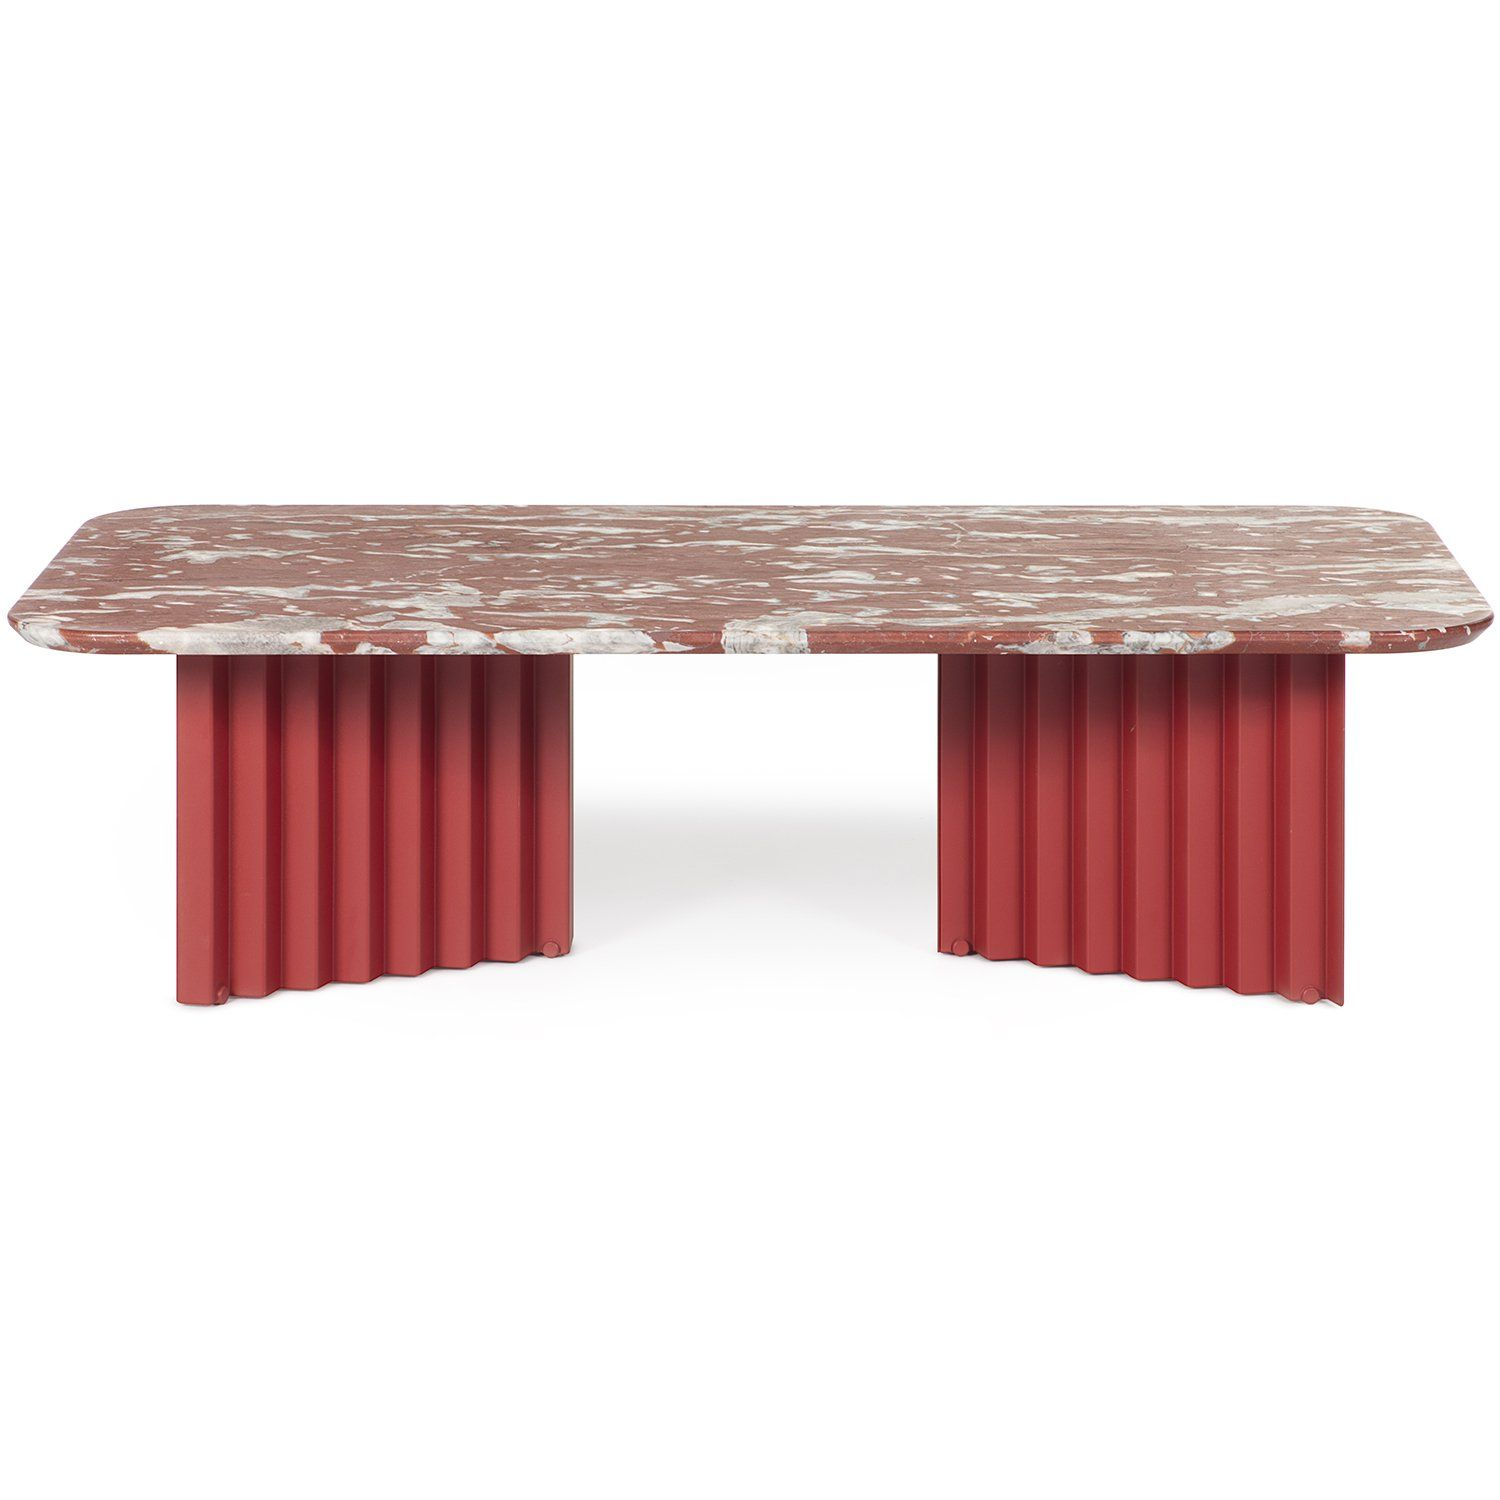 Plec Table Marble Top Buy Rs Barcelona Online At A R Marble Top Marble Detail Table [ 1500 x 1500 Pixel ]